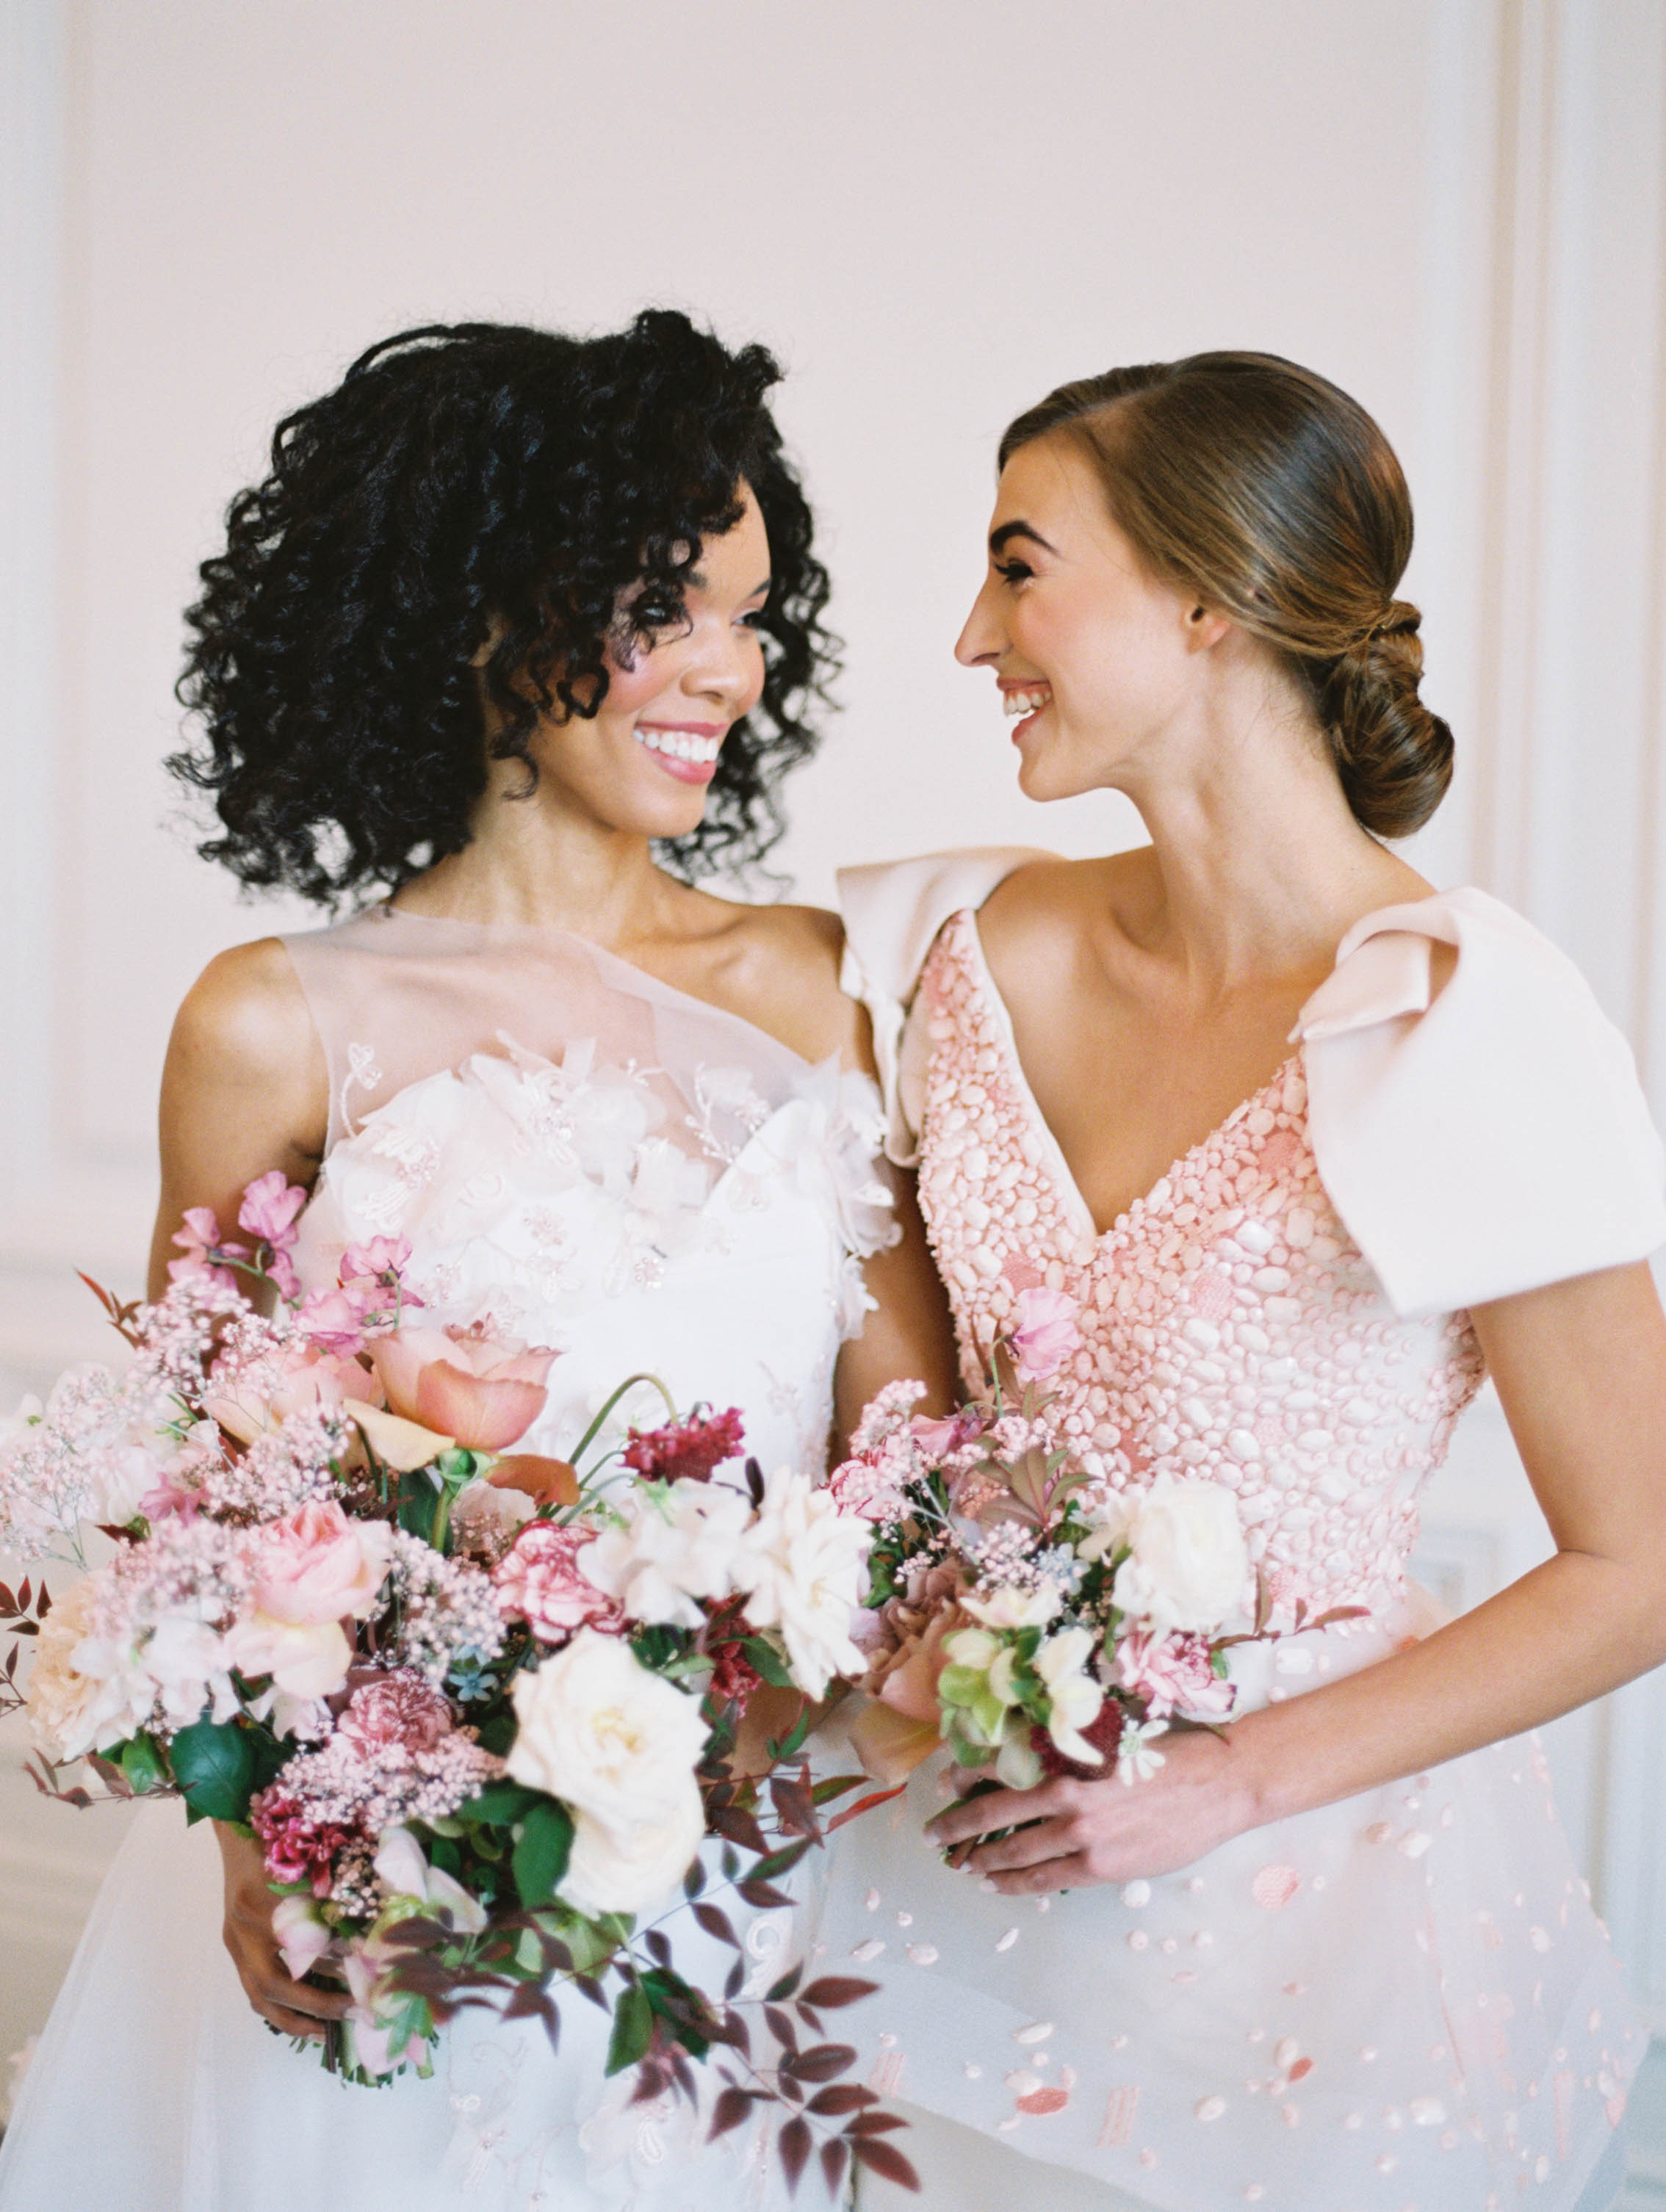 maid of honor hairstyles bride and maid of honor